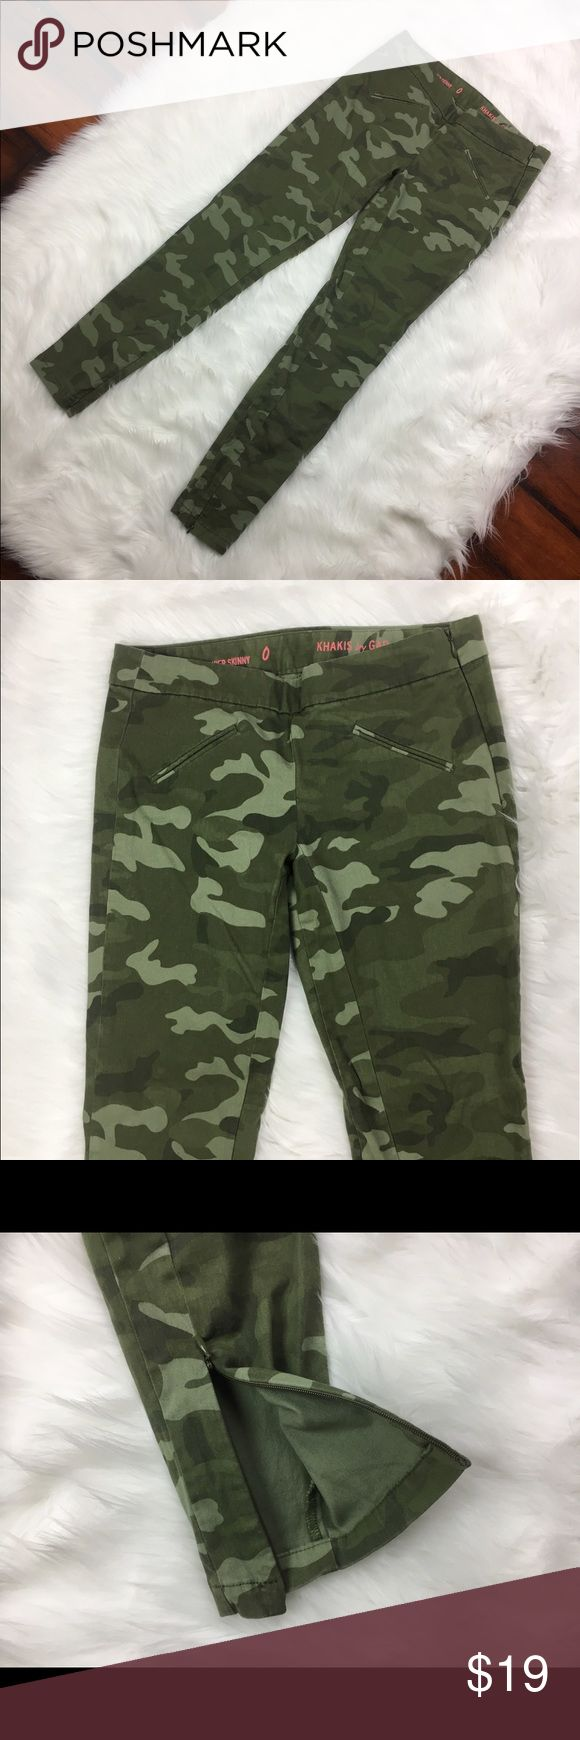 GAP Womens SUPER SKINNY Khakis Camouflage Army GAP Womens SUPER SKINNY Khakis Camouflage Army Print Zipper Ankle Pants Sz 0 D1 •Waist 14 Inches •Inseam 27 Inches •98% Cotton •2% Spandex GAP Pants Ankle & Cropped